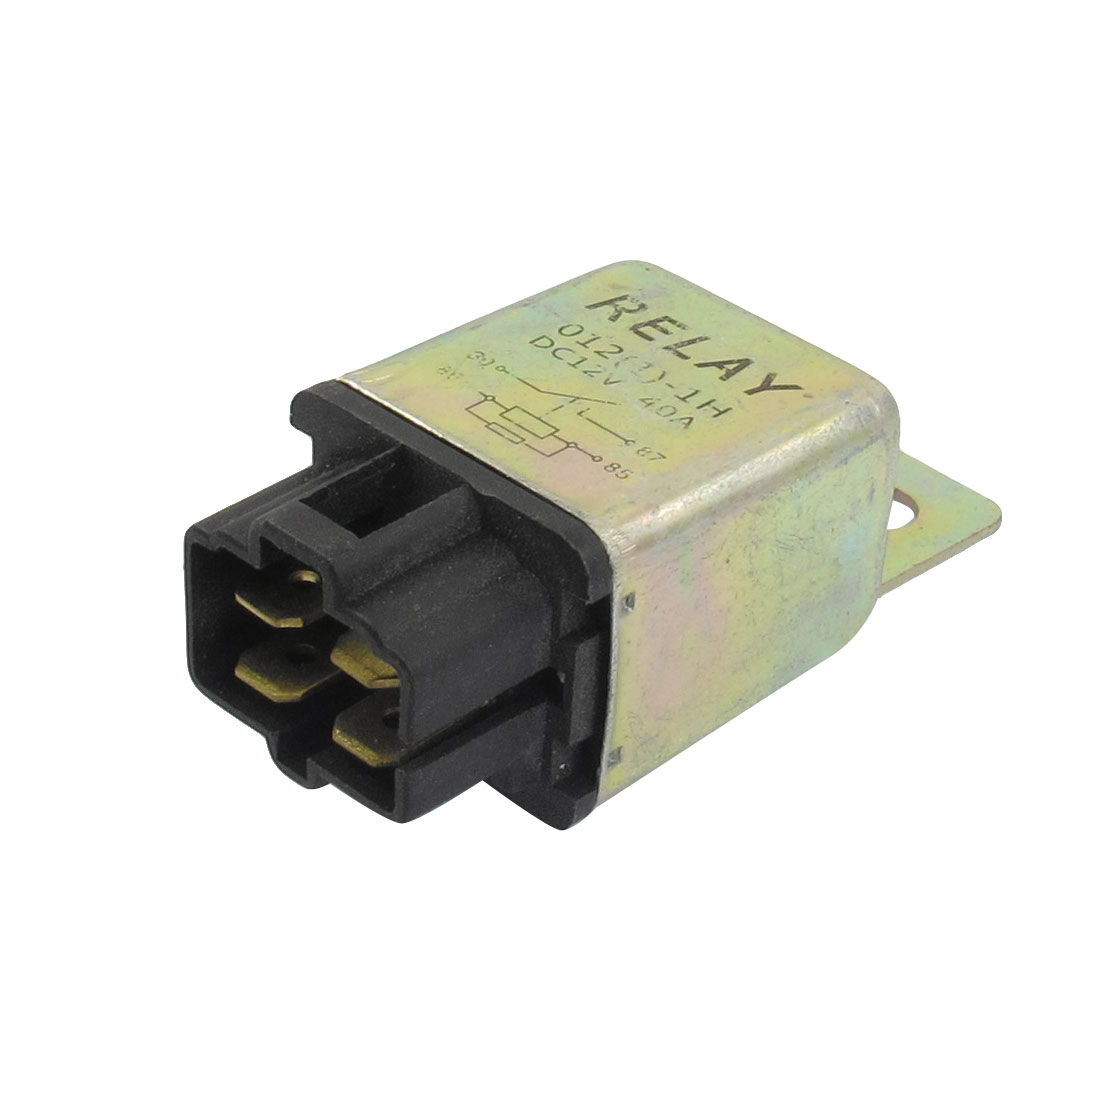 Auto Car Air Conditioner DC 12V 40A 4 Pin Power Relay